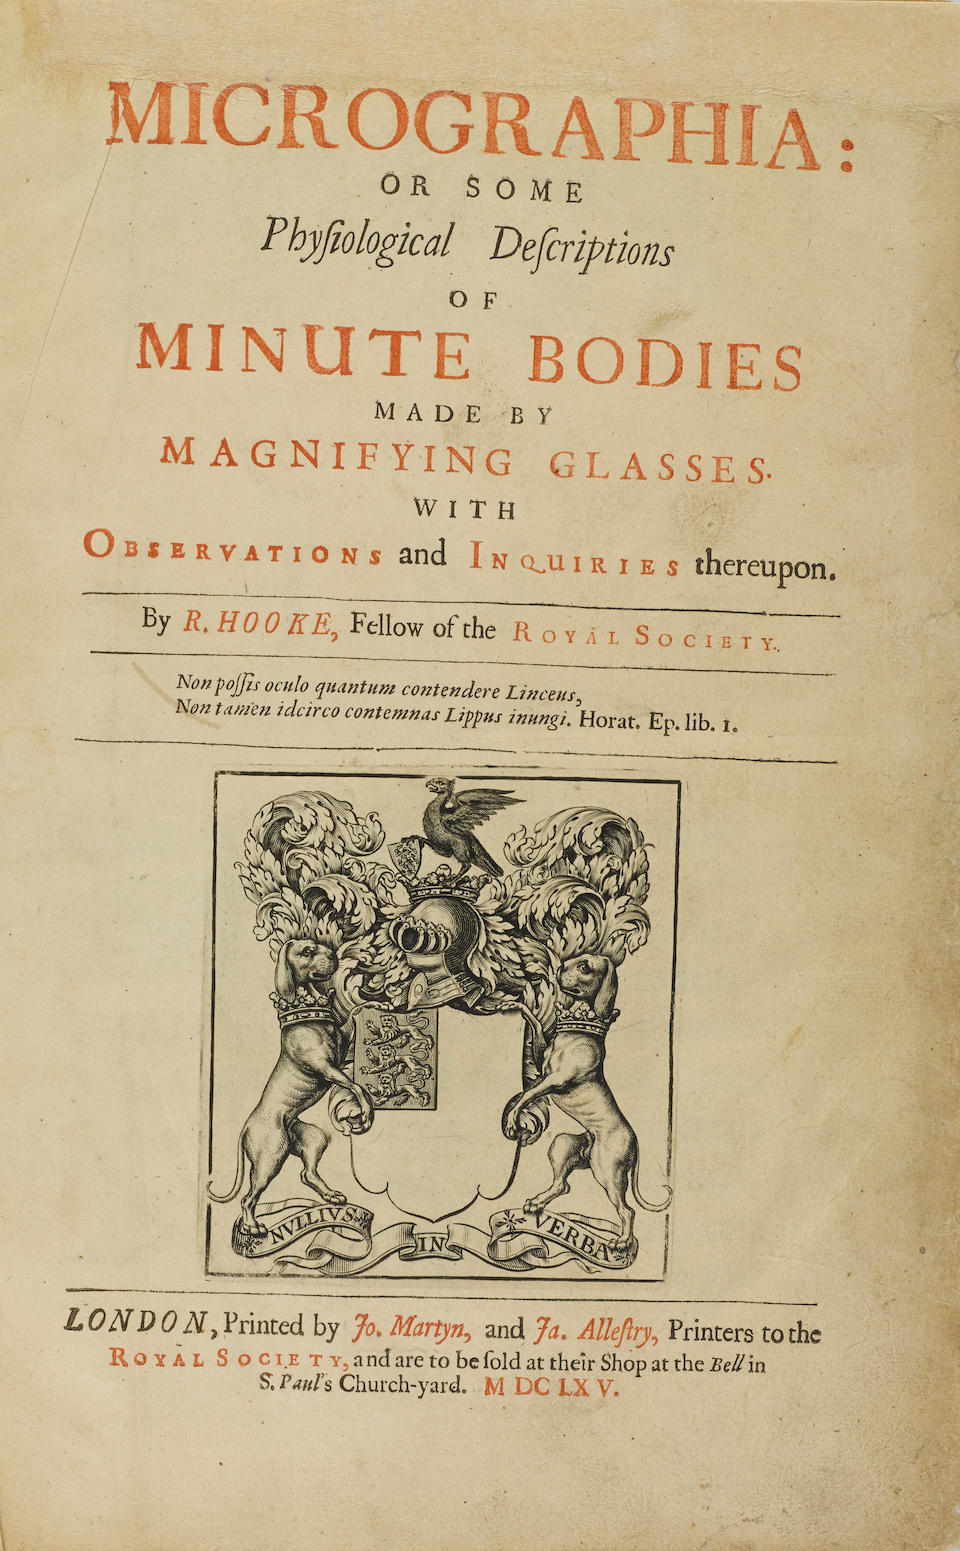 HOOKE, ROBERT. 1635-1703. Micrographia: or Some Physiological Descriptions of Minute Bodies Made with Magnifying Glasses with Observation and Inquiries thereupon. London: Printed by Jo. Martyn, and Ja. Allestry, 1665.